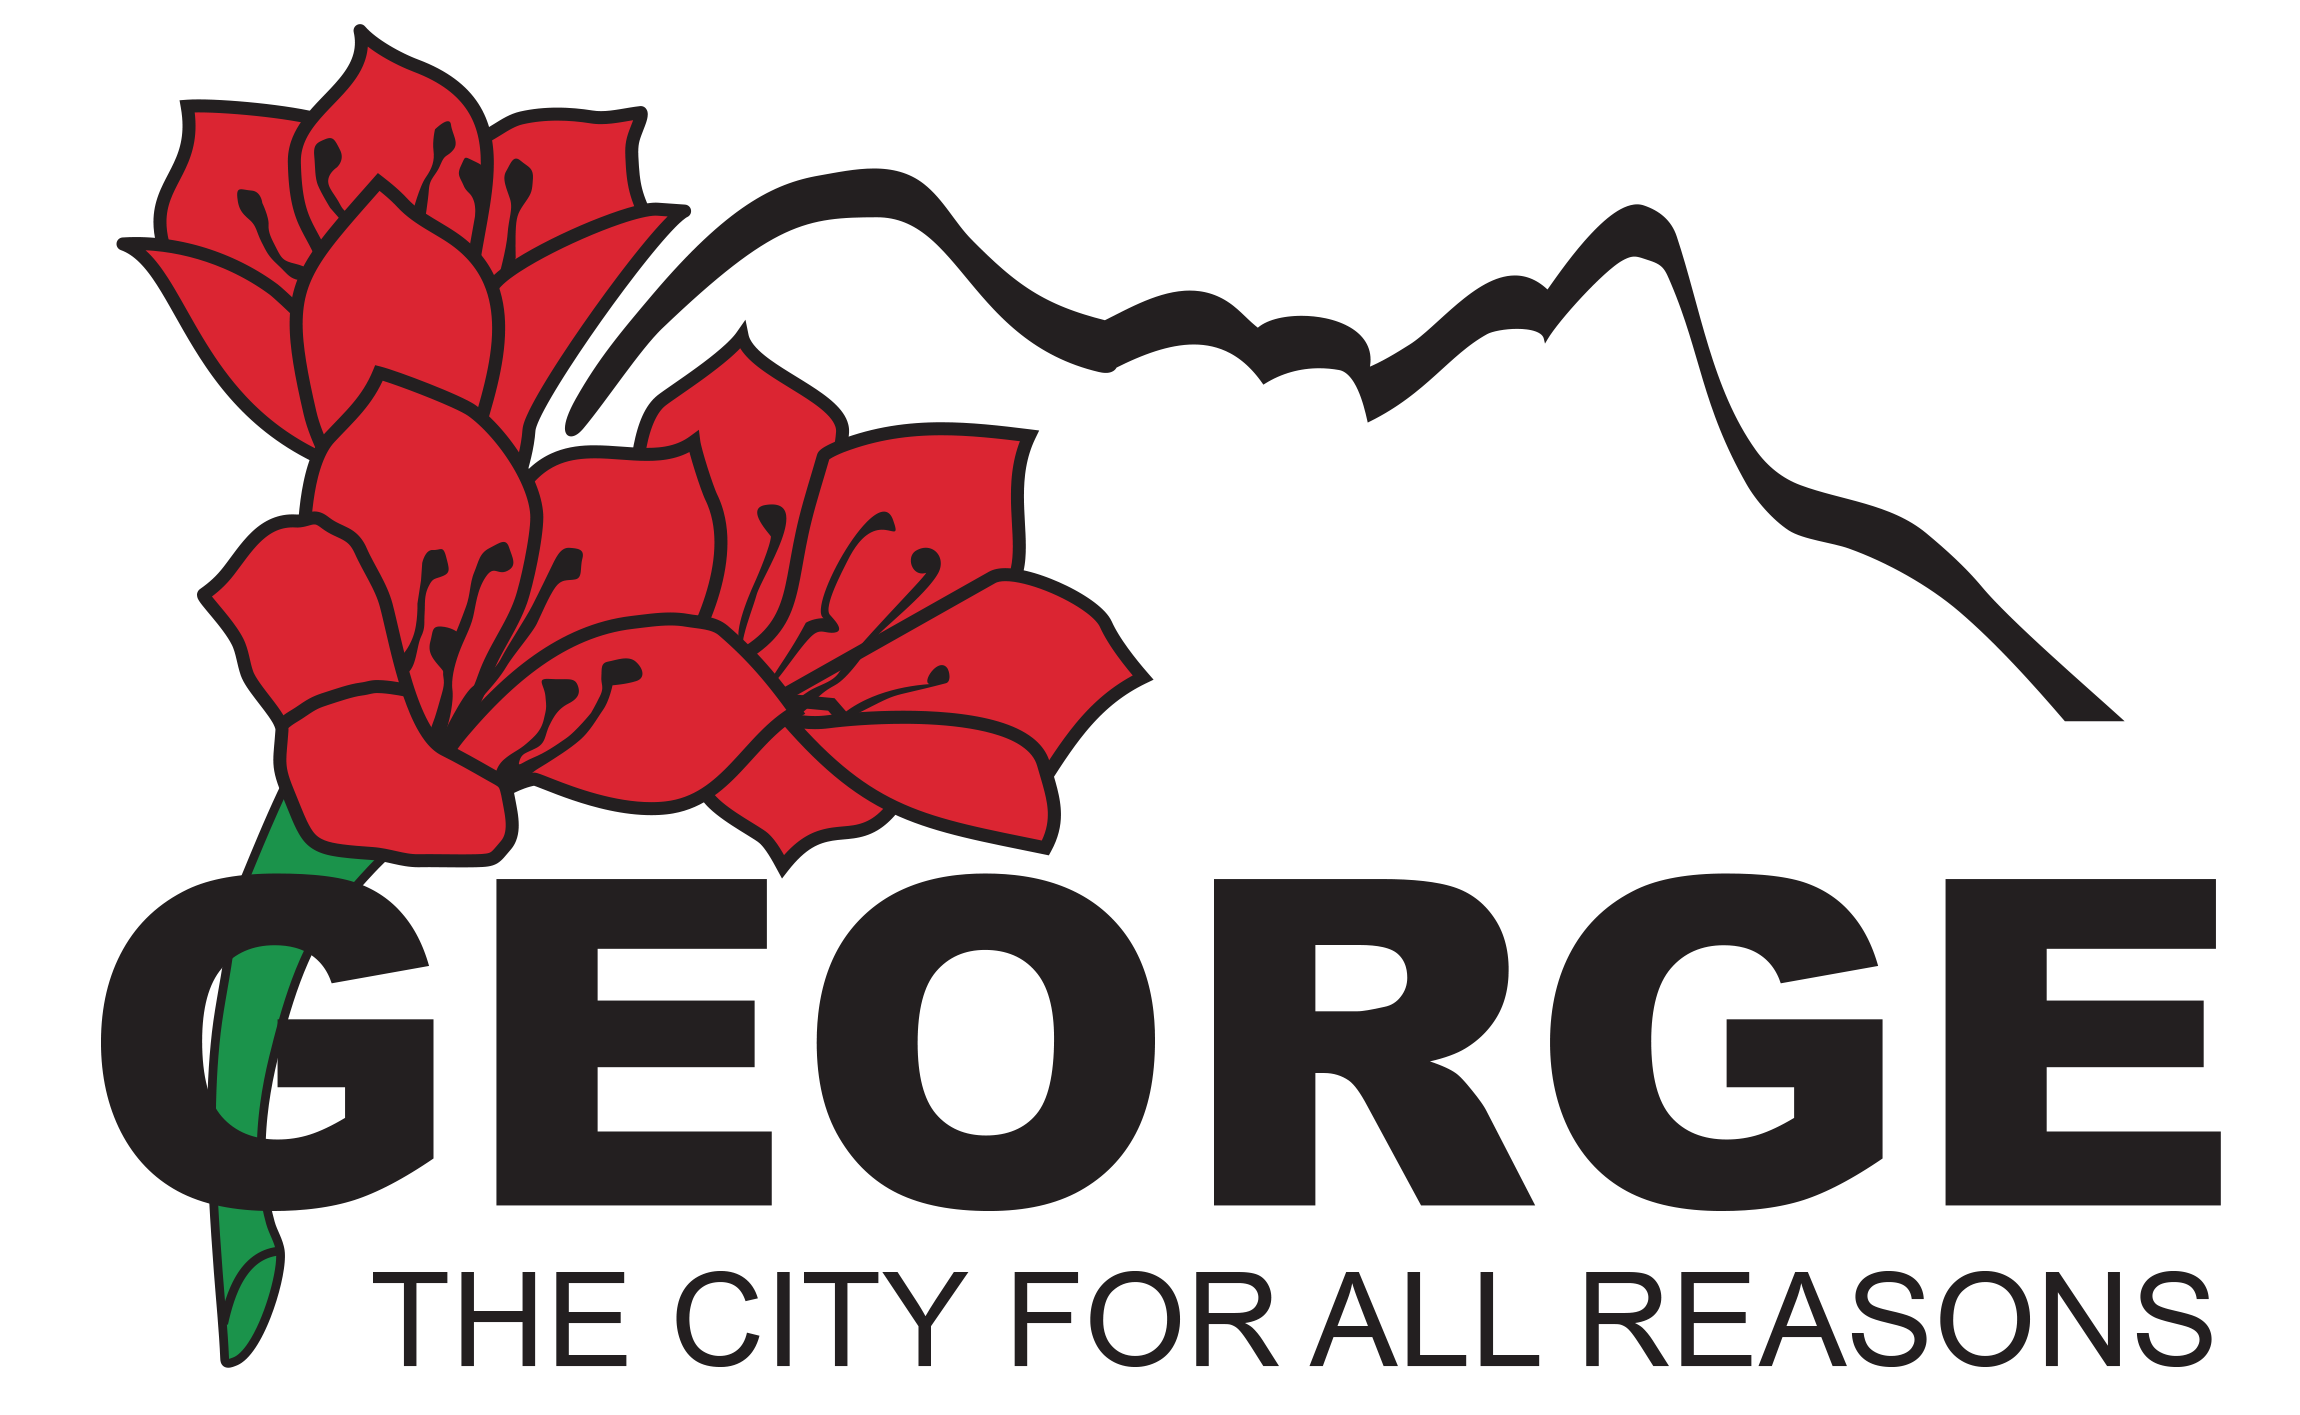 George Municipality City For A Sustainable Future